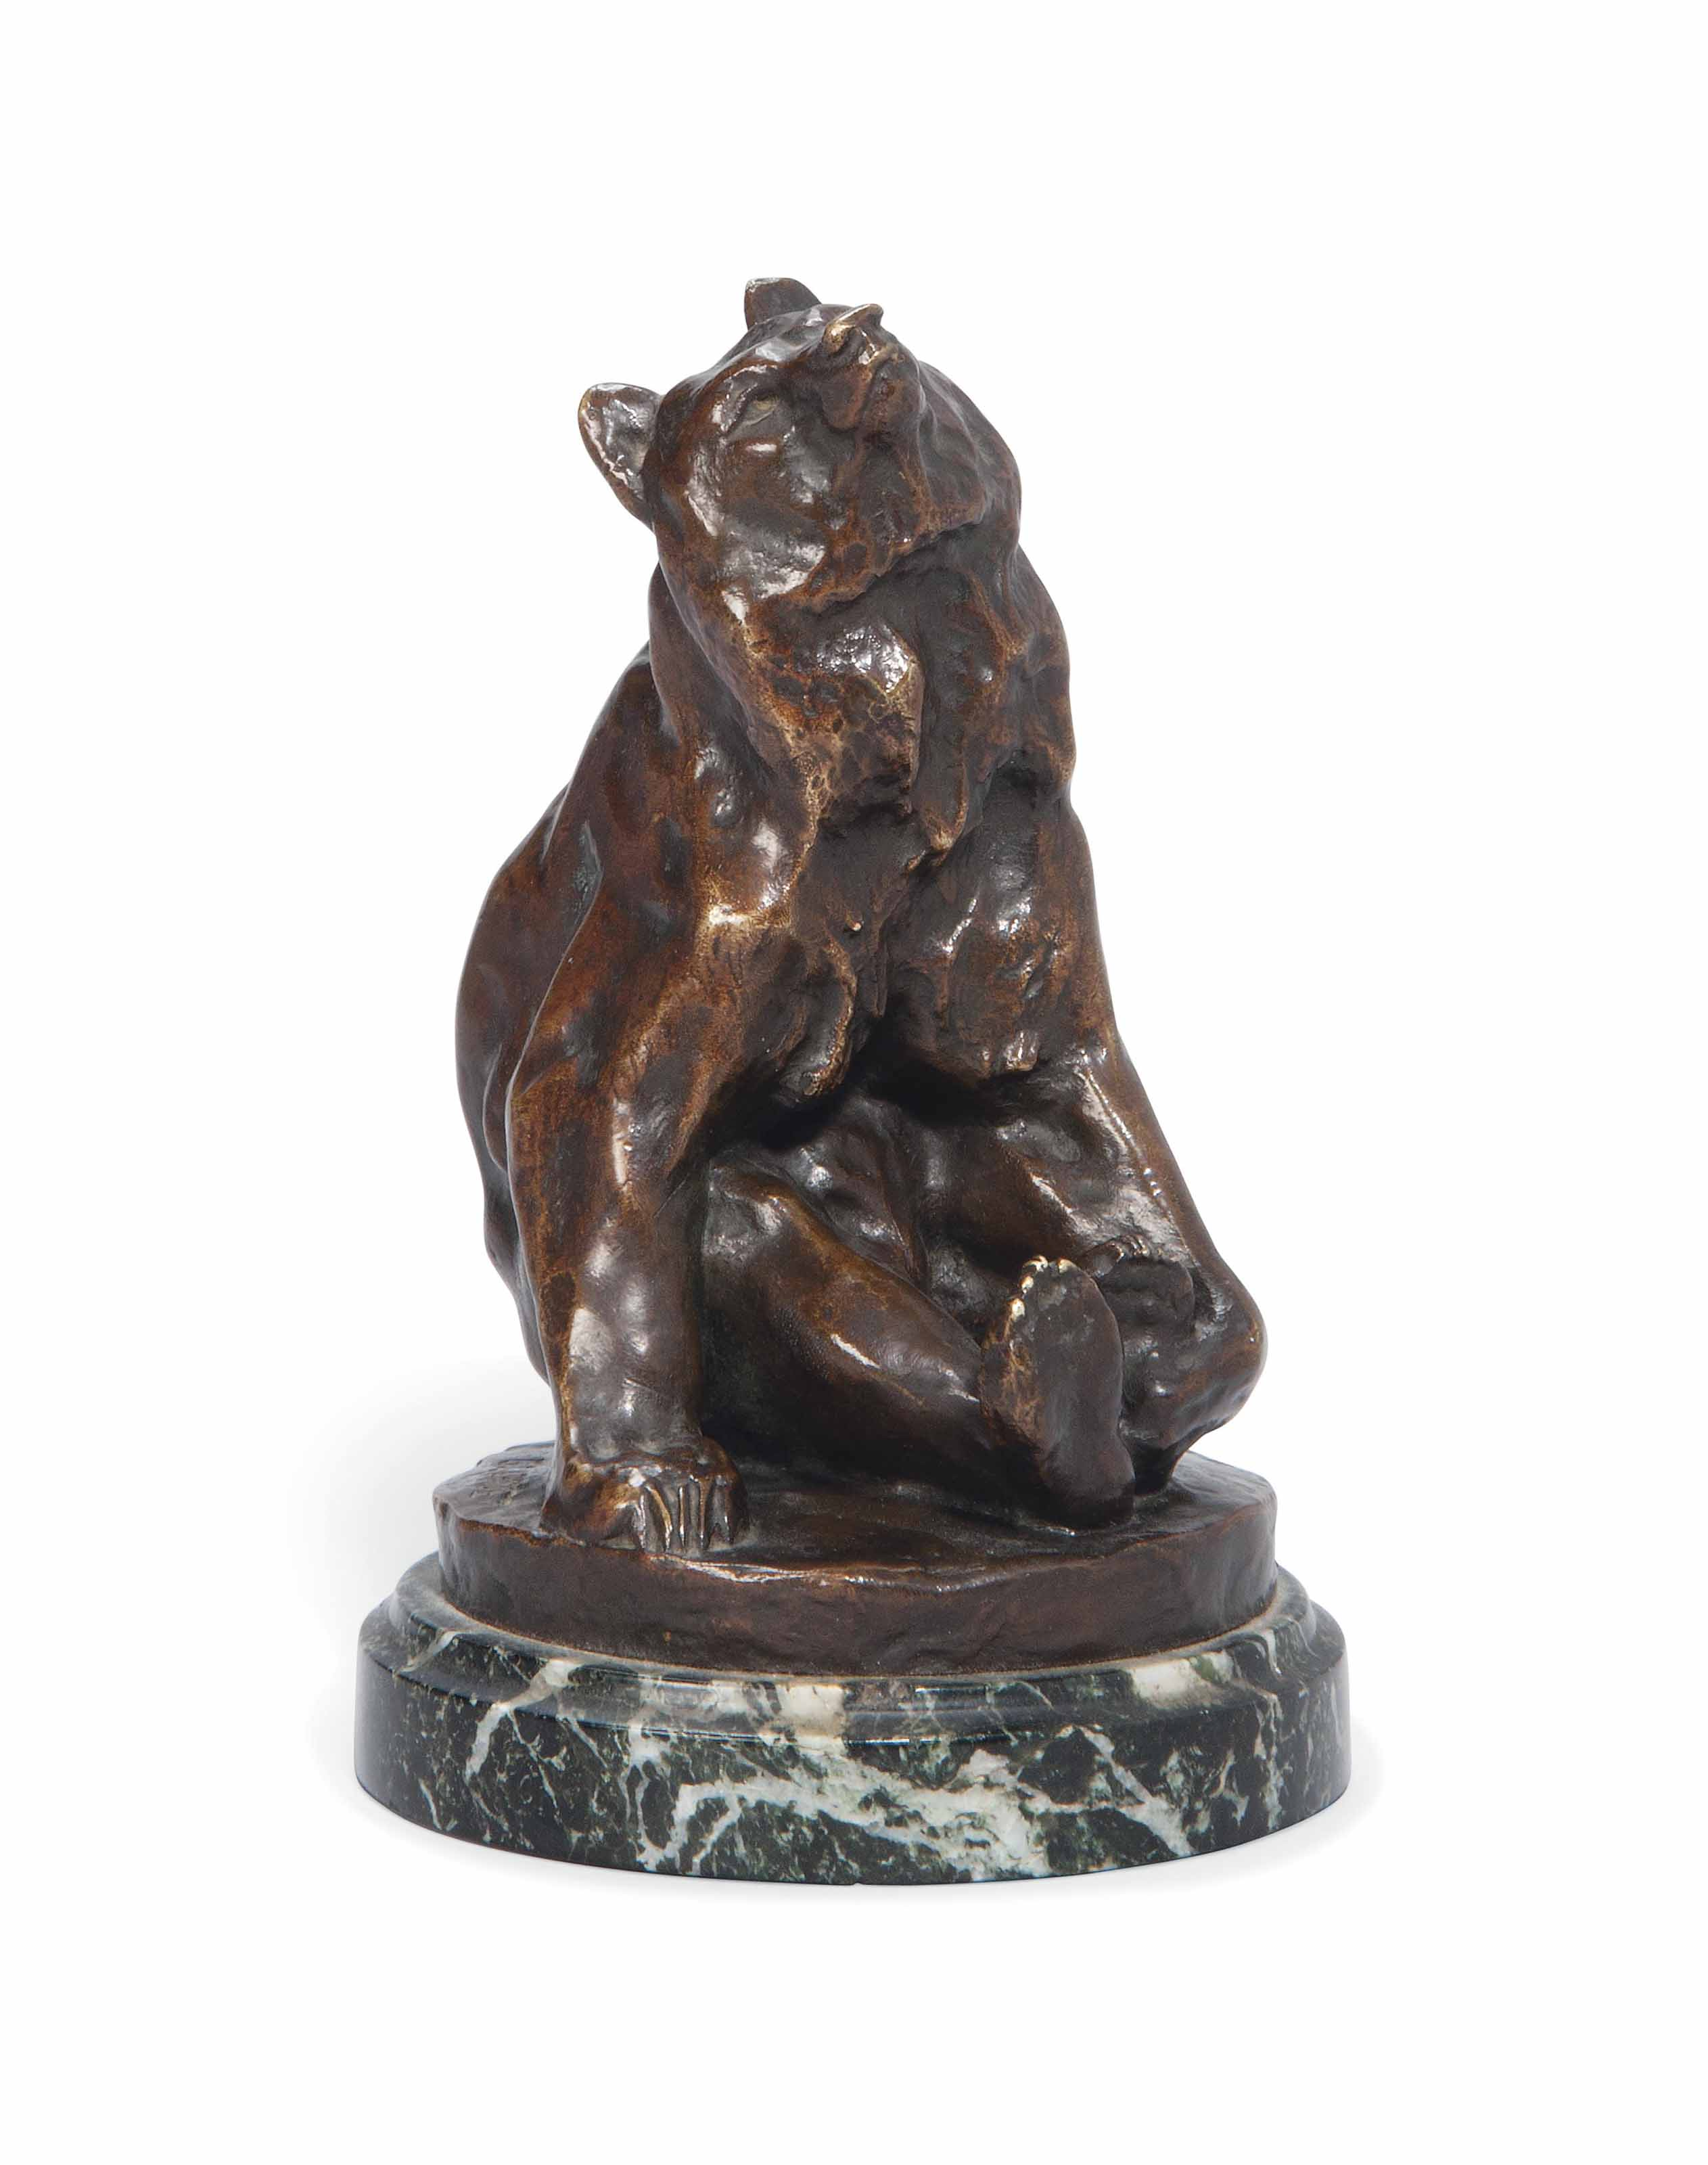 A FRENCH BRONZE FIGURE OF A BEAR